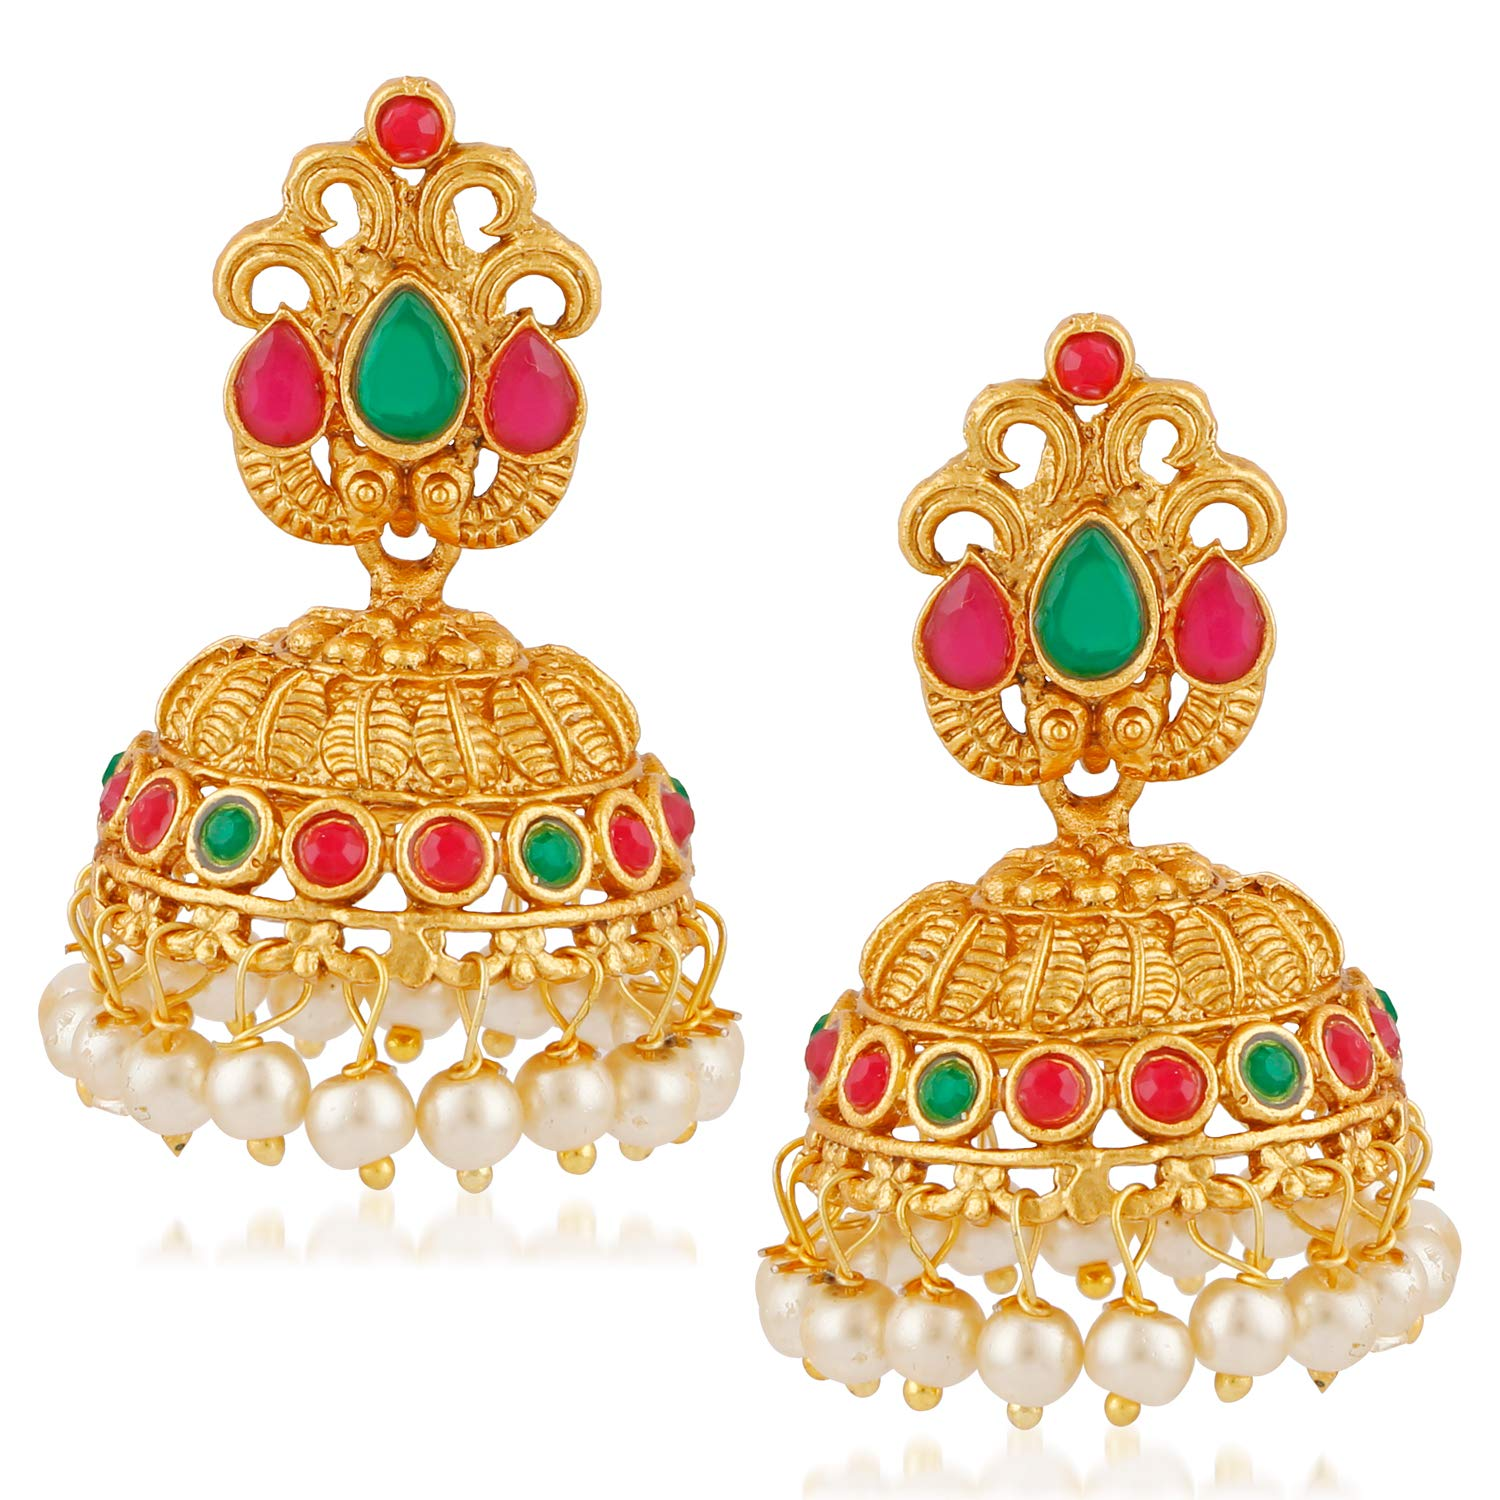 MEENAZ South Indian Temple Jewellery Sets Traditional Matte Gold Pearl Ruby  Green Jhumka/Jhumki Earrings for Women/Girls Stylish.